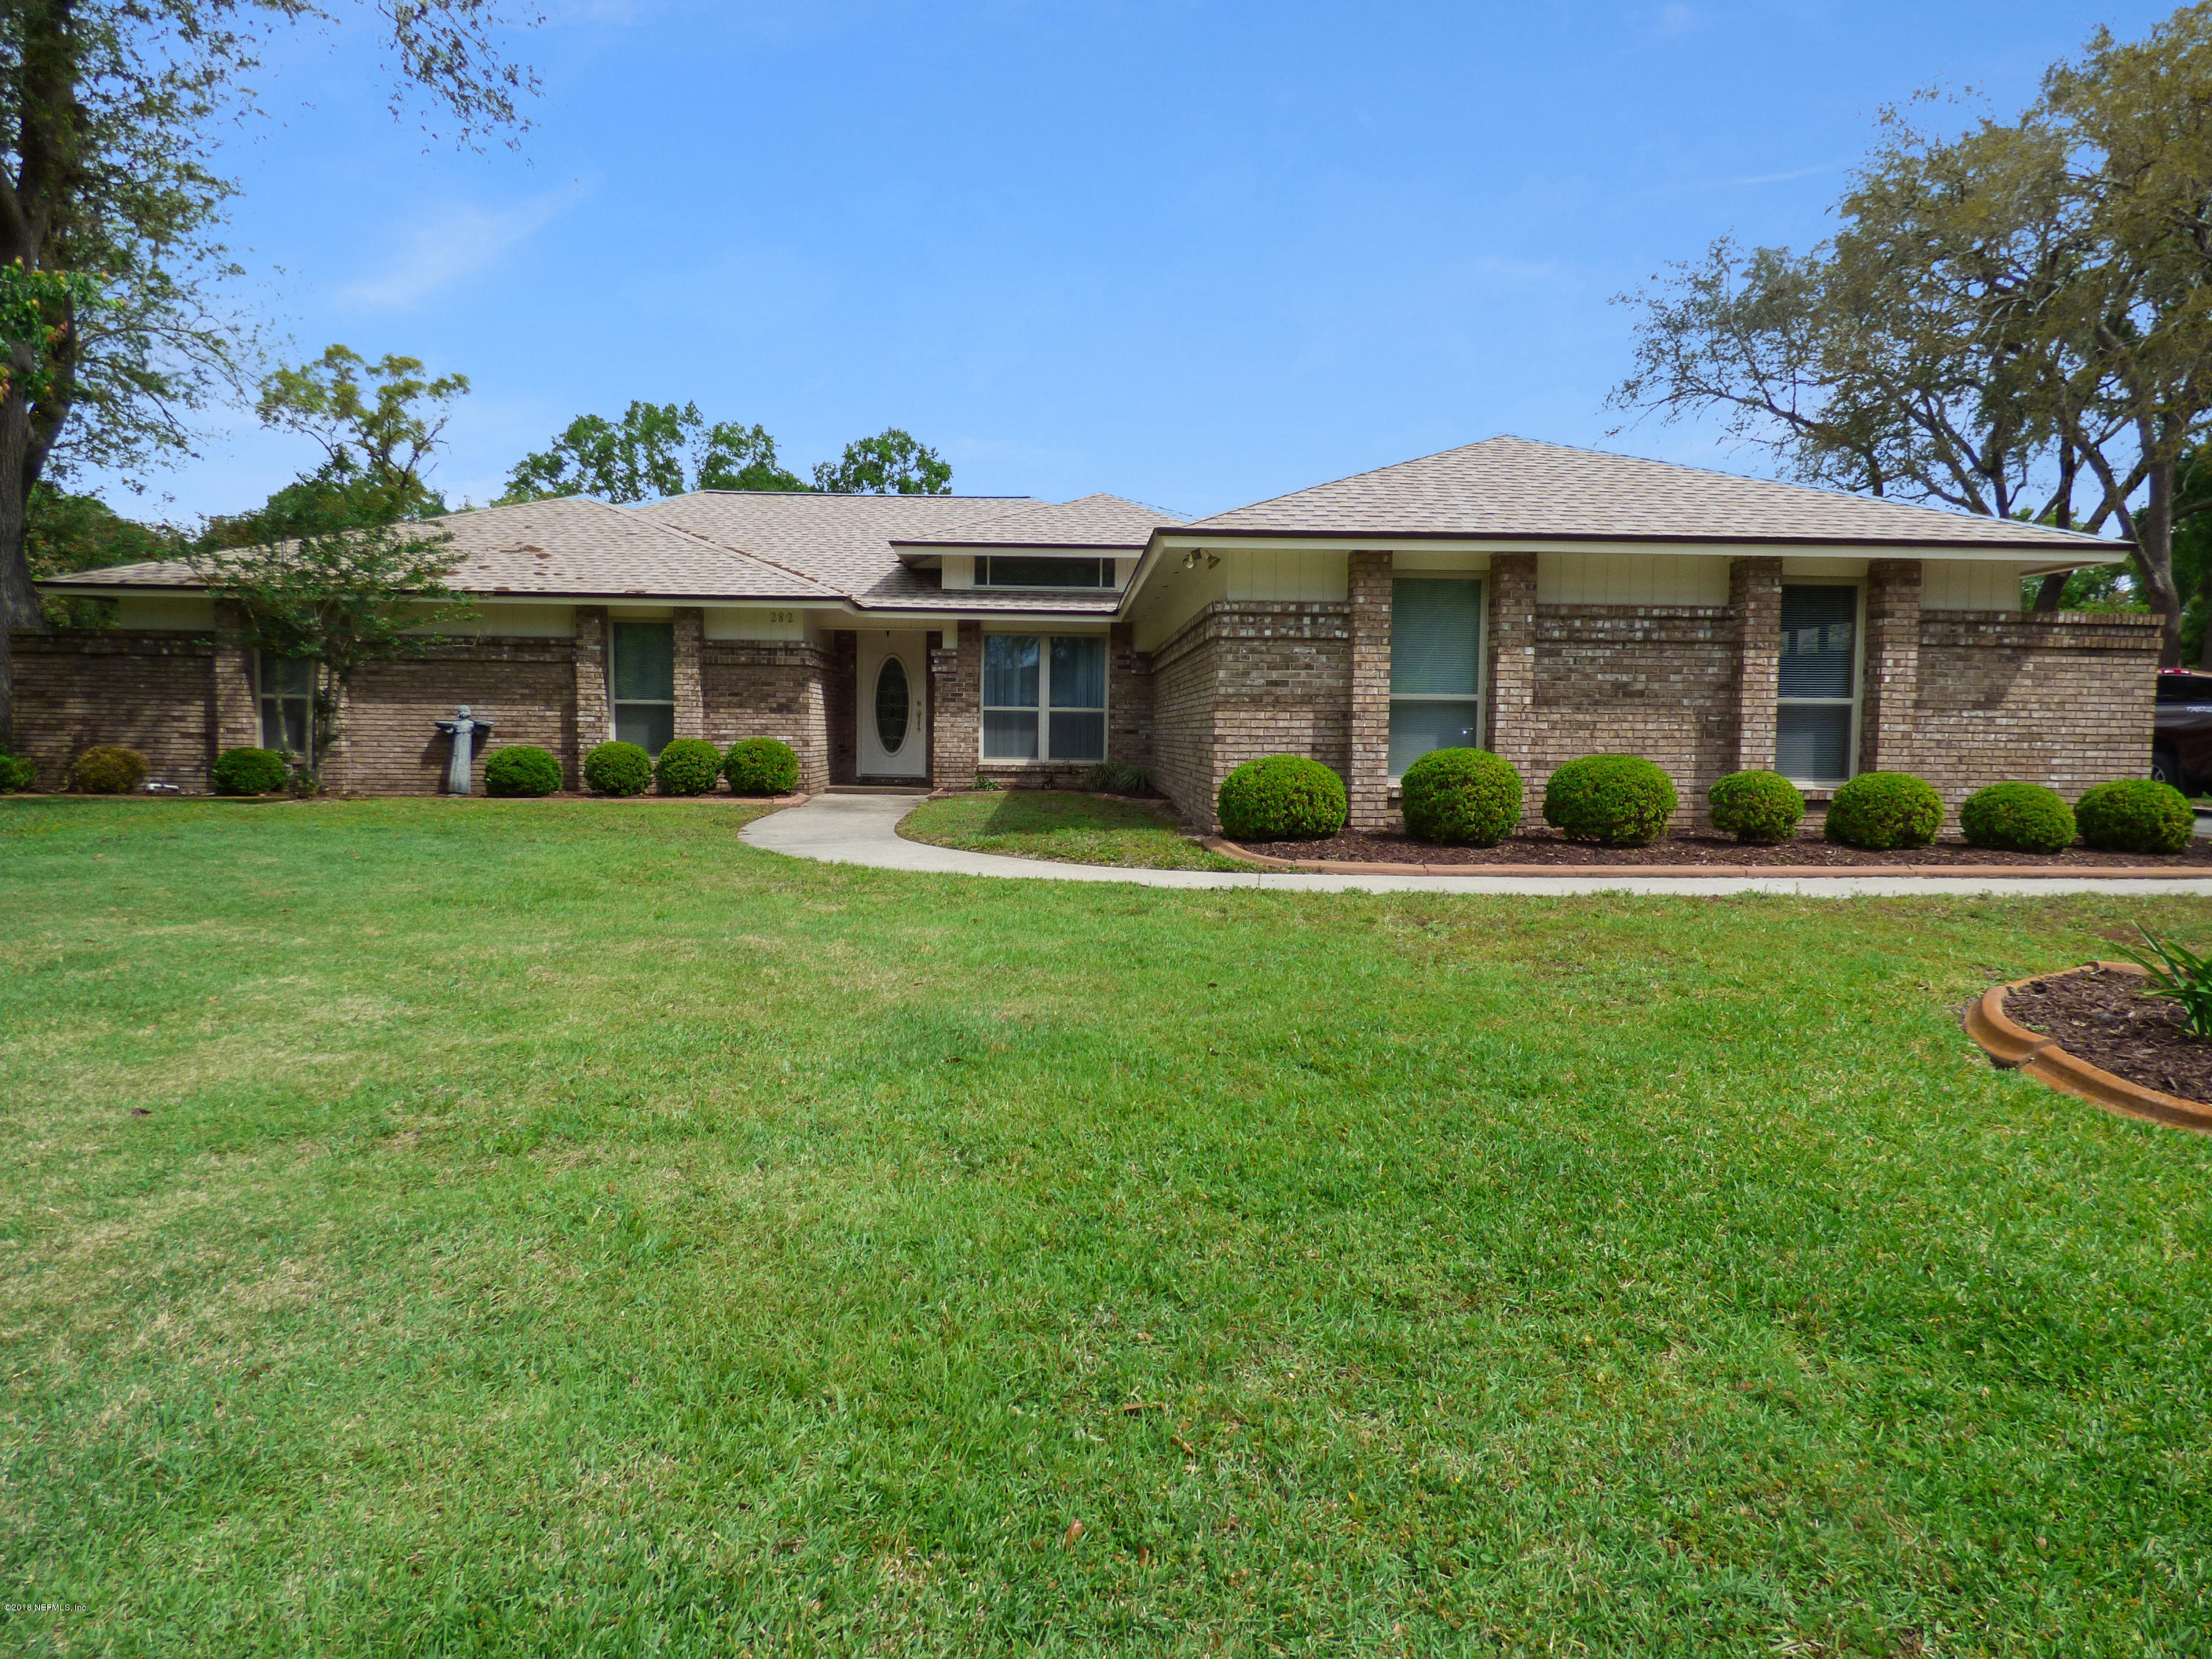 282 DEVONSHIRE, ORANGE PARK, FLORIDA 32073, 3 Bedrooms Bedrooms, ,2 BathroomsBathrooms,Residential - single family,For sale,DEVONSHIRE,930058